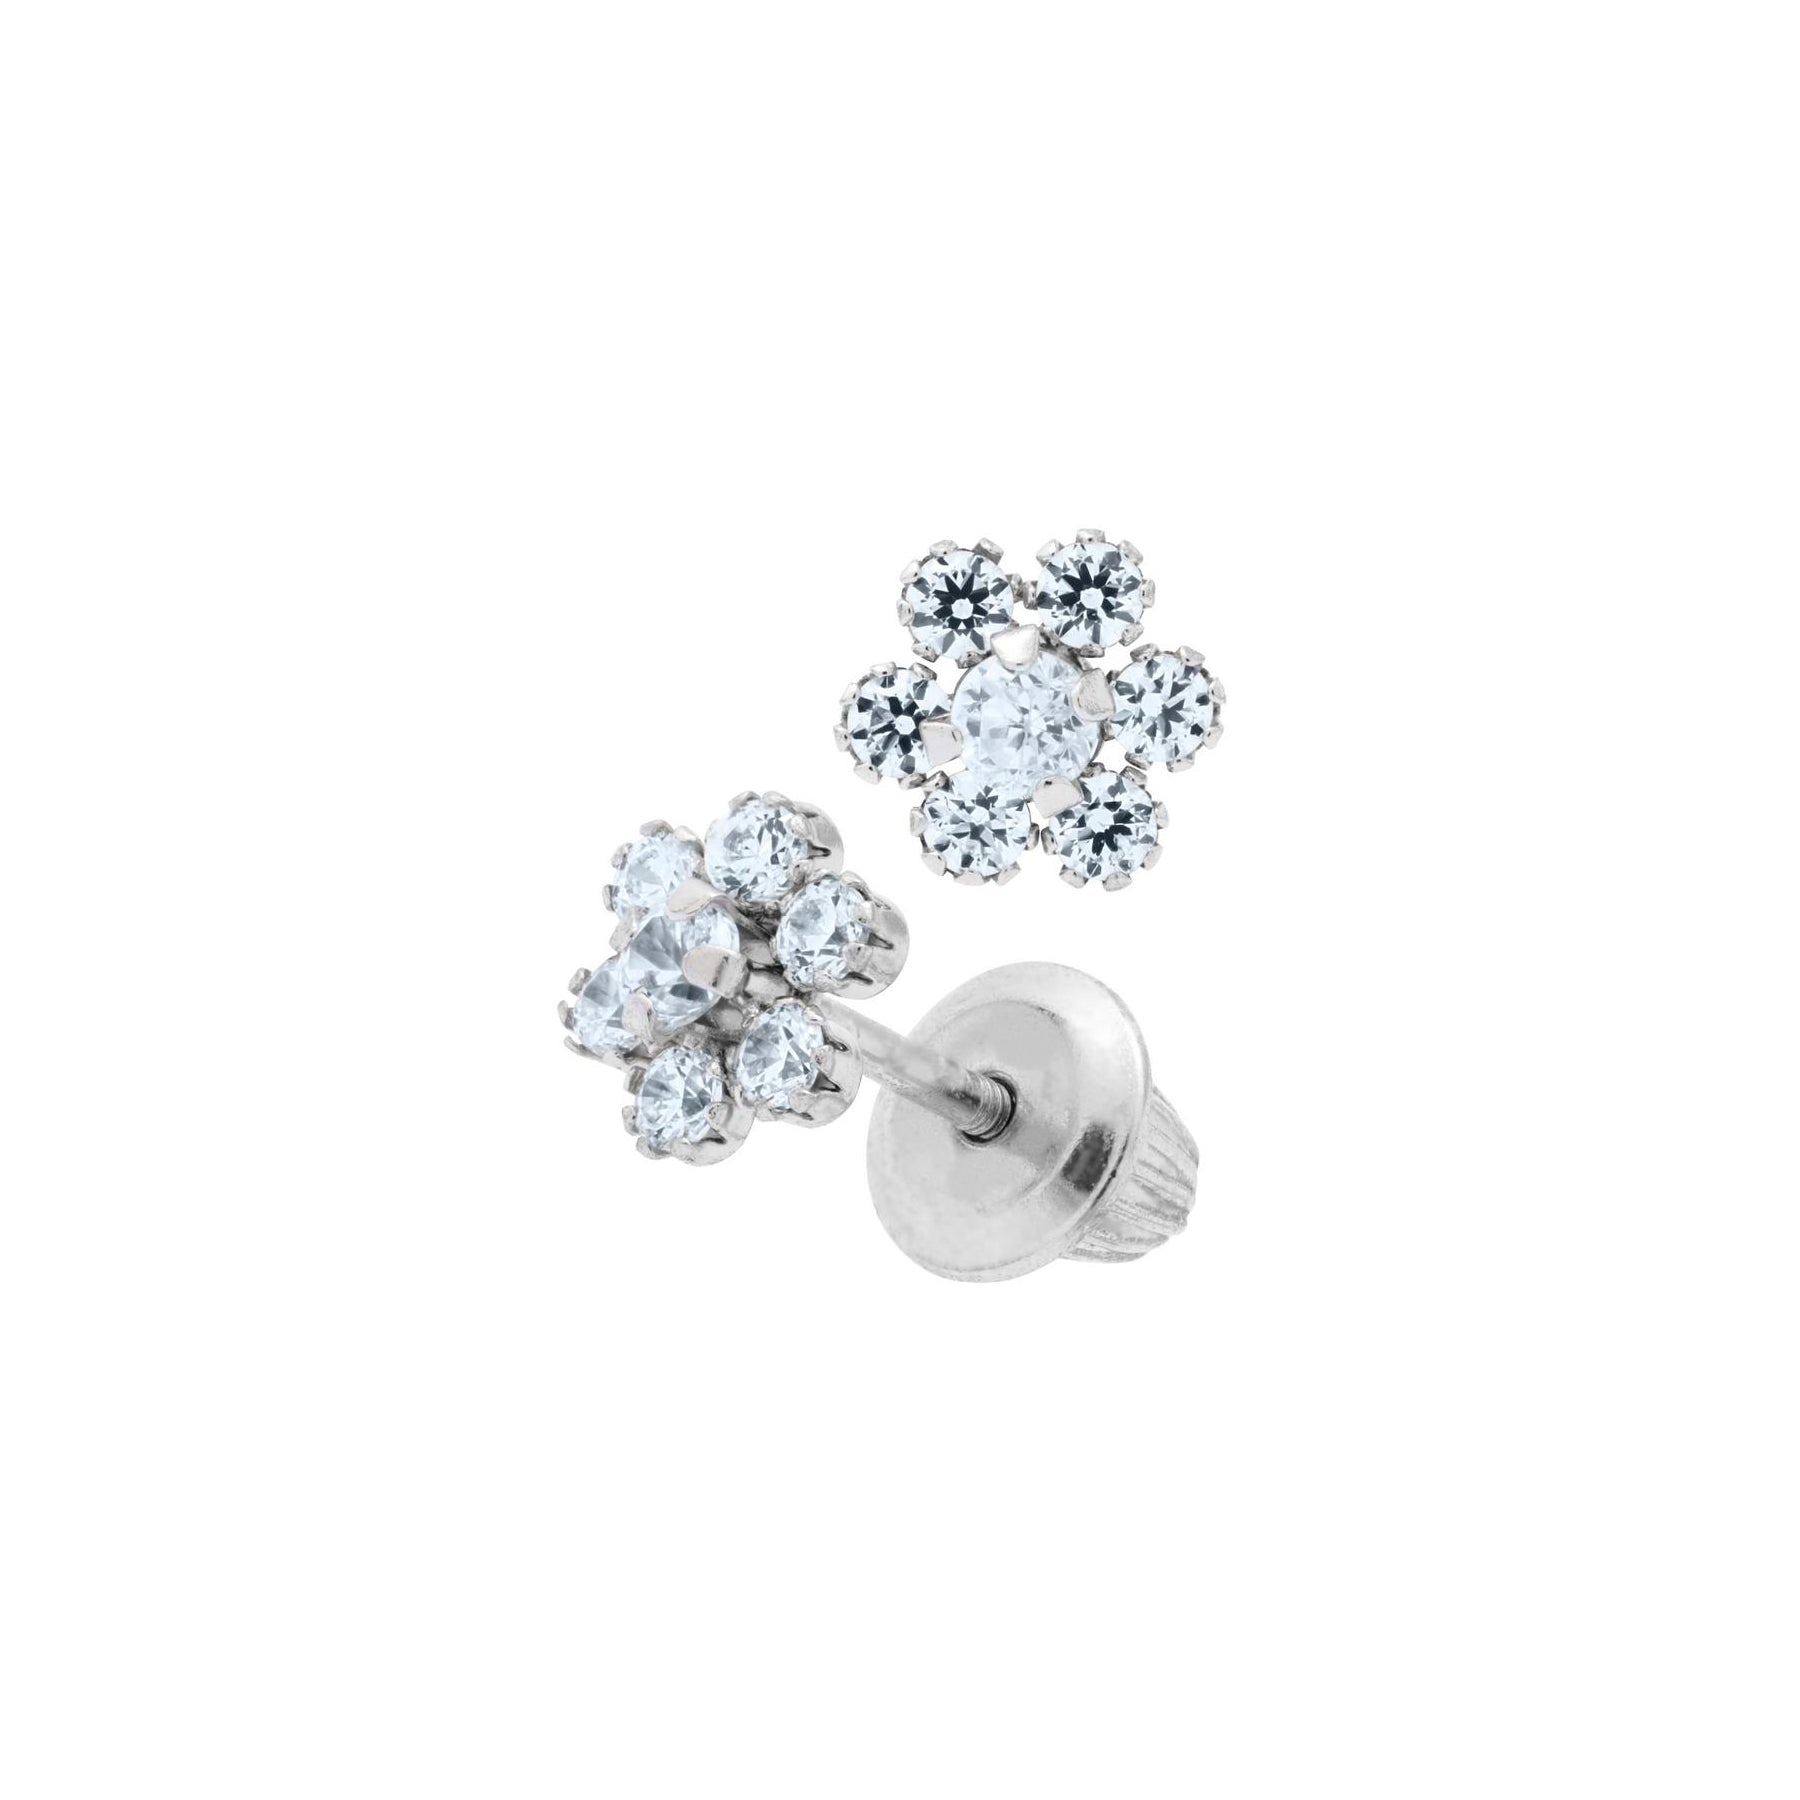 fb7392267 Fortunoff Fine Jewelry. Home; Child's Cubic Zirconia Flower Earrings, 14K  White Gold